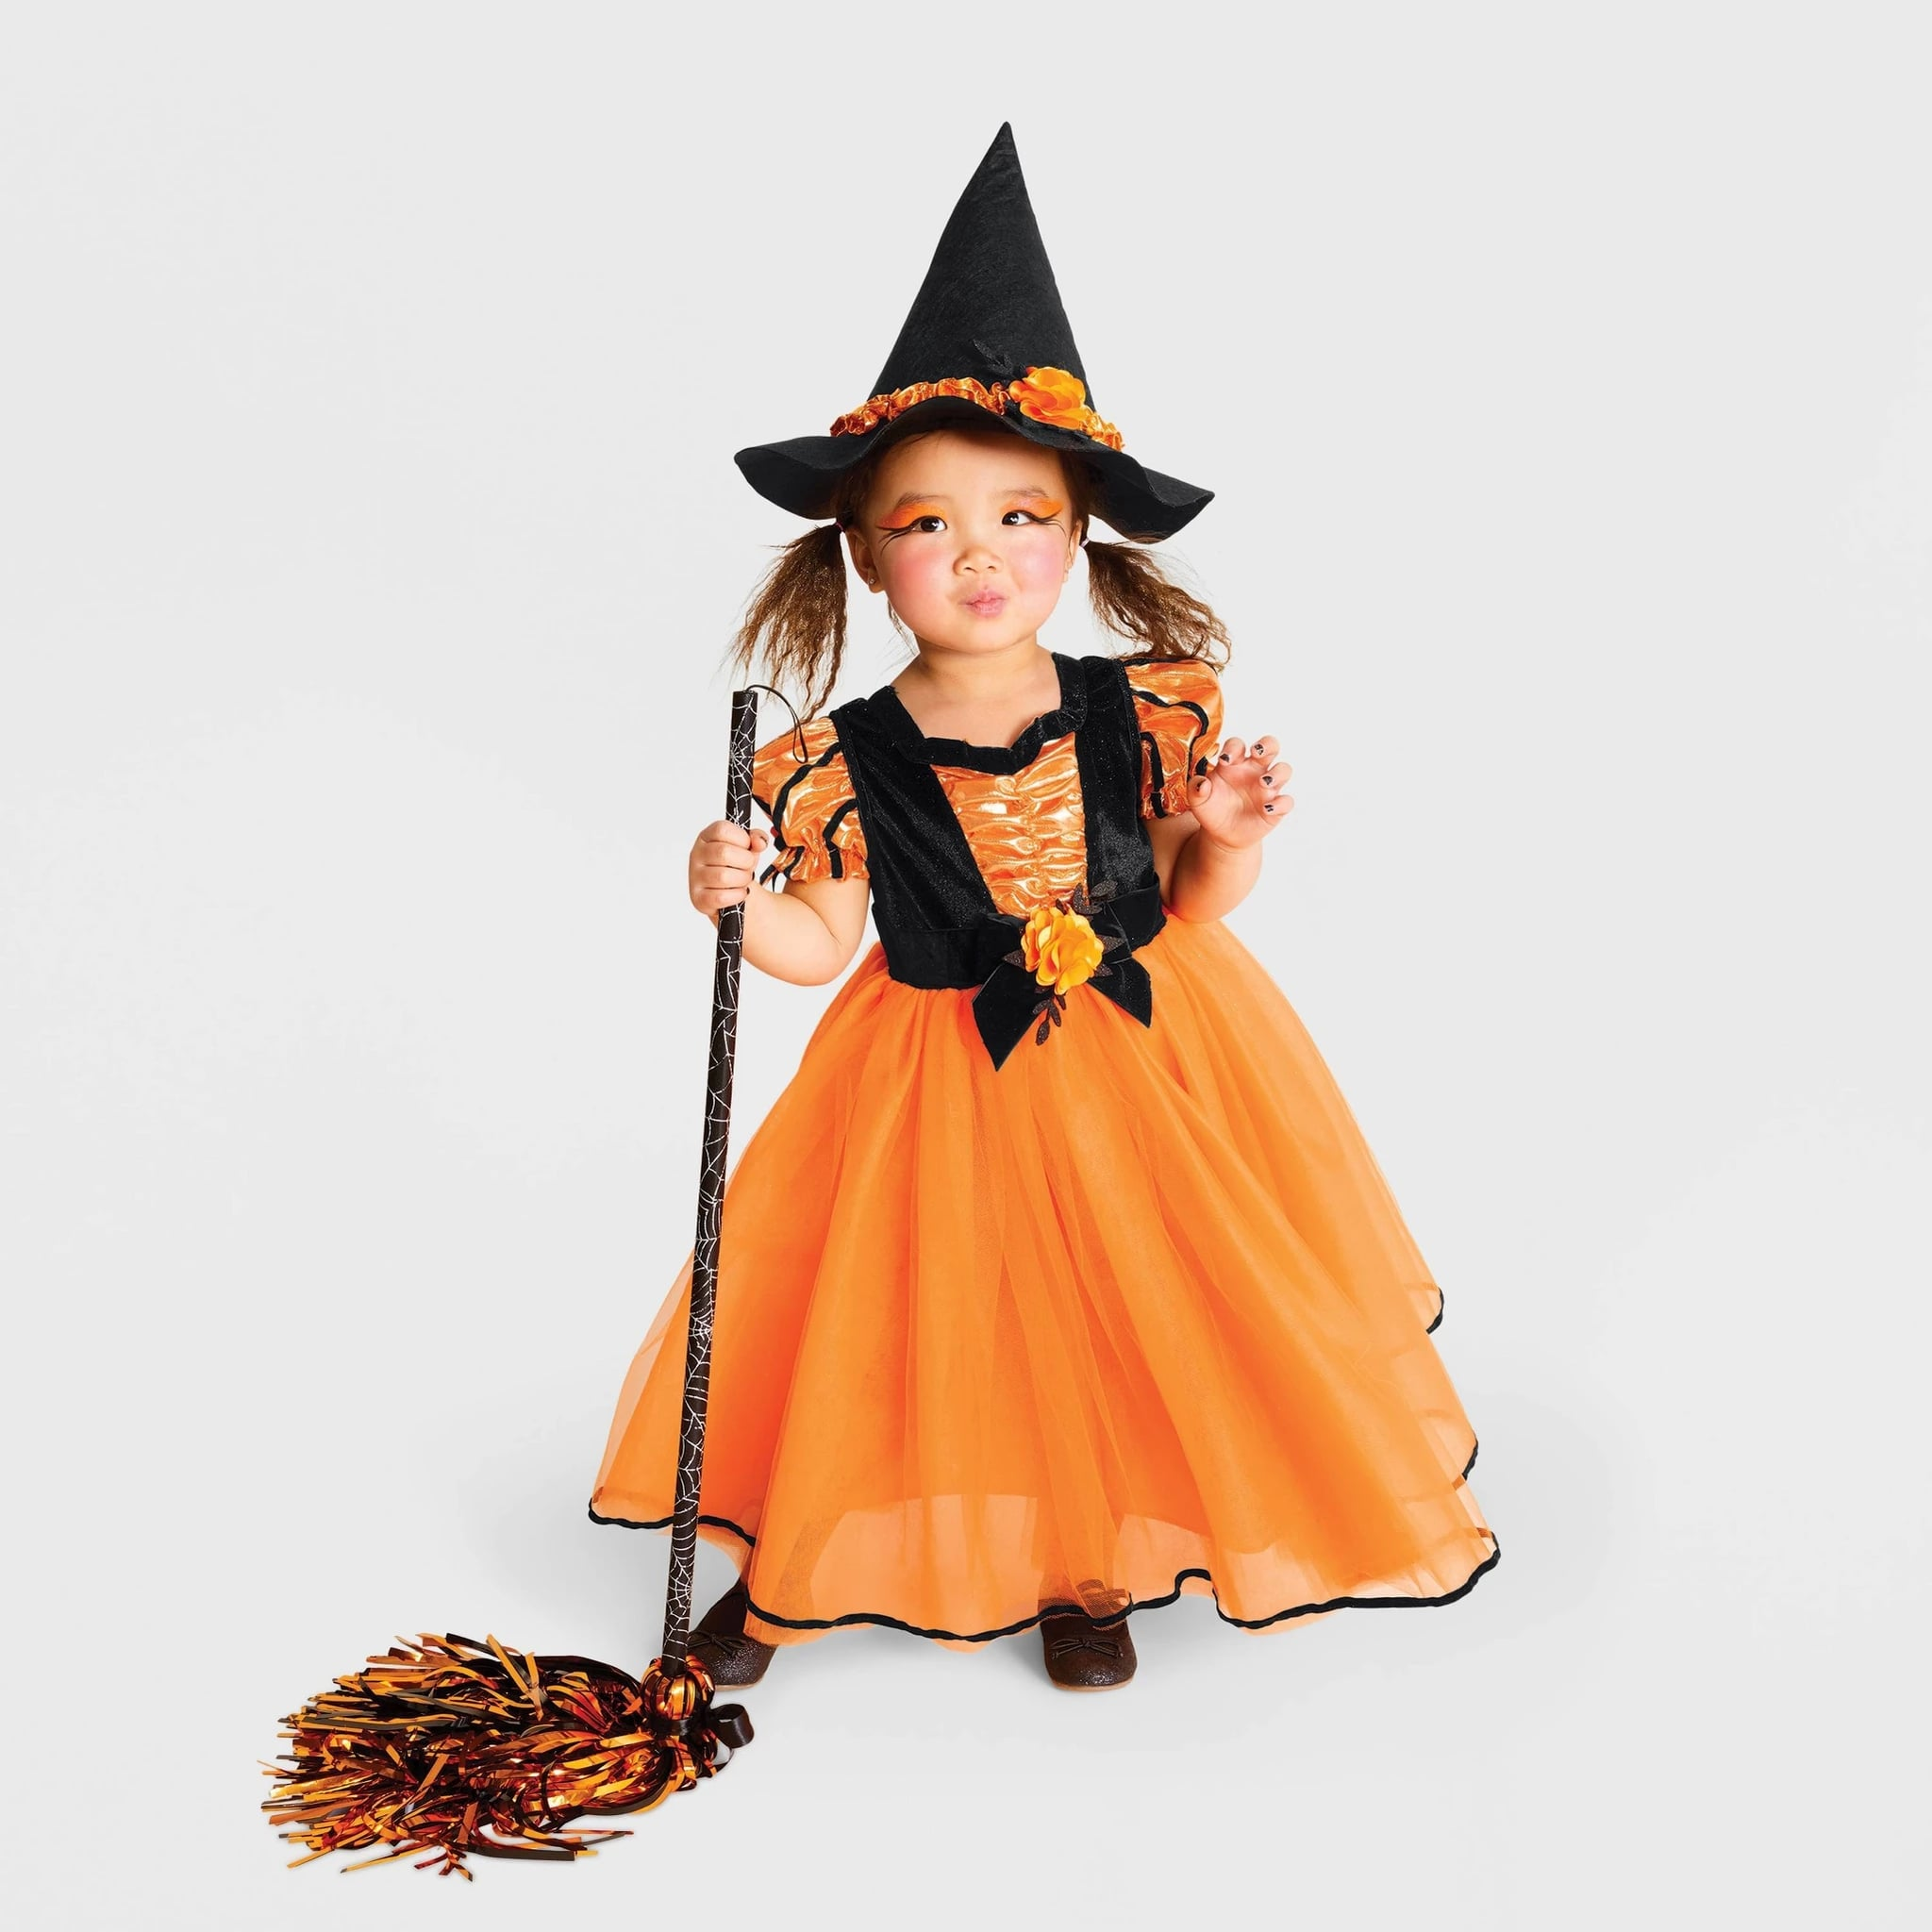 Toddler Girls Fancy Witch Halloween Costume The 100 Cutest Spookiest Halloween Costumes For Babies And Toddlers Popsugar Family Photo 78